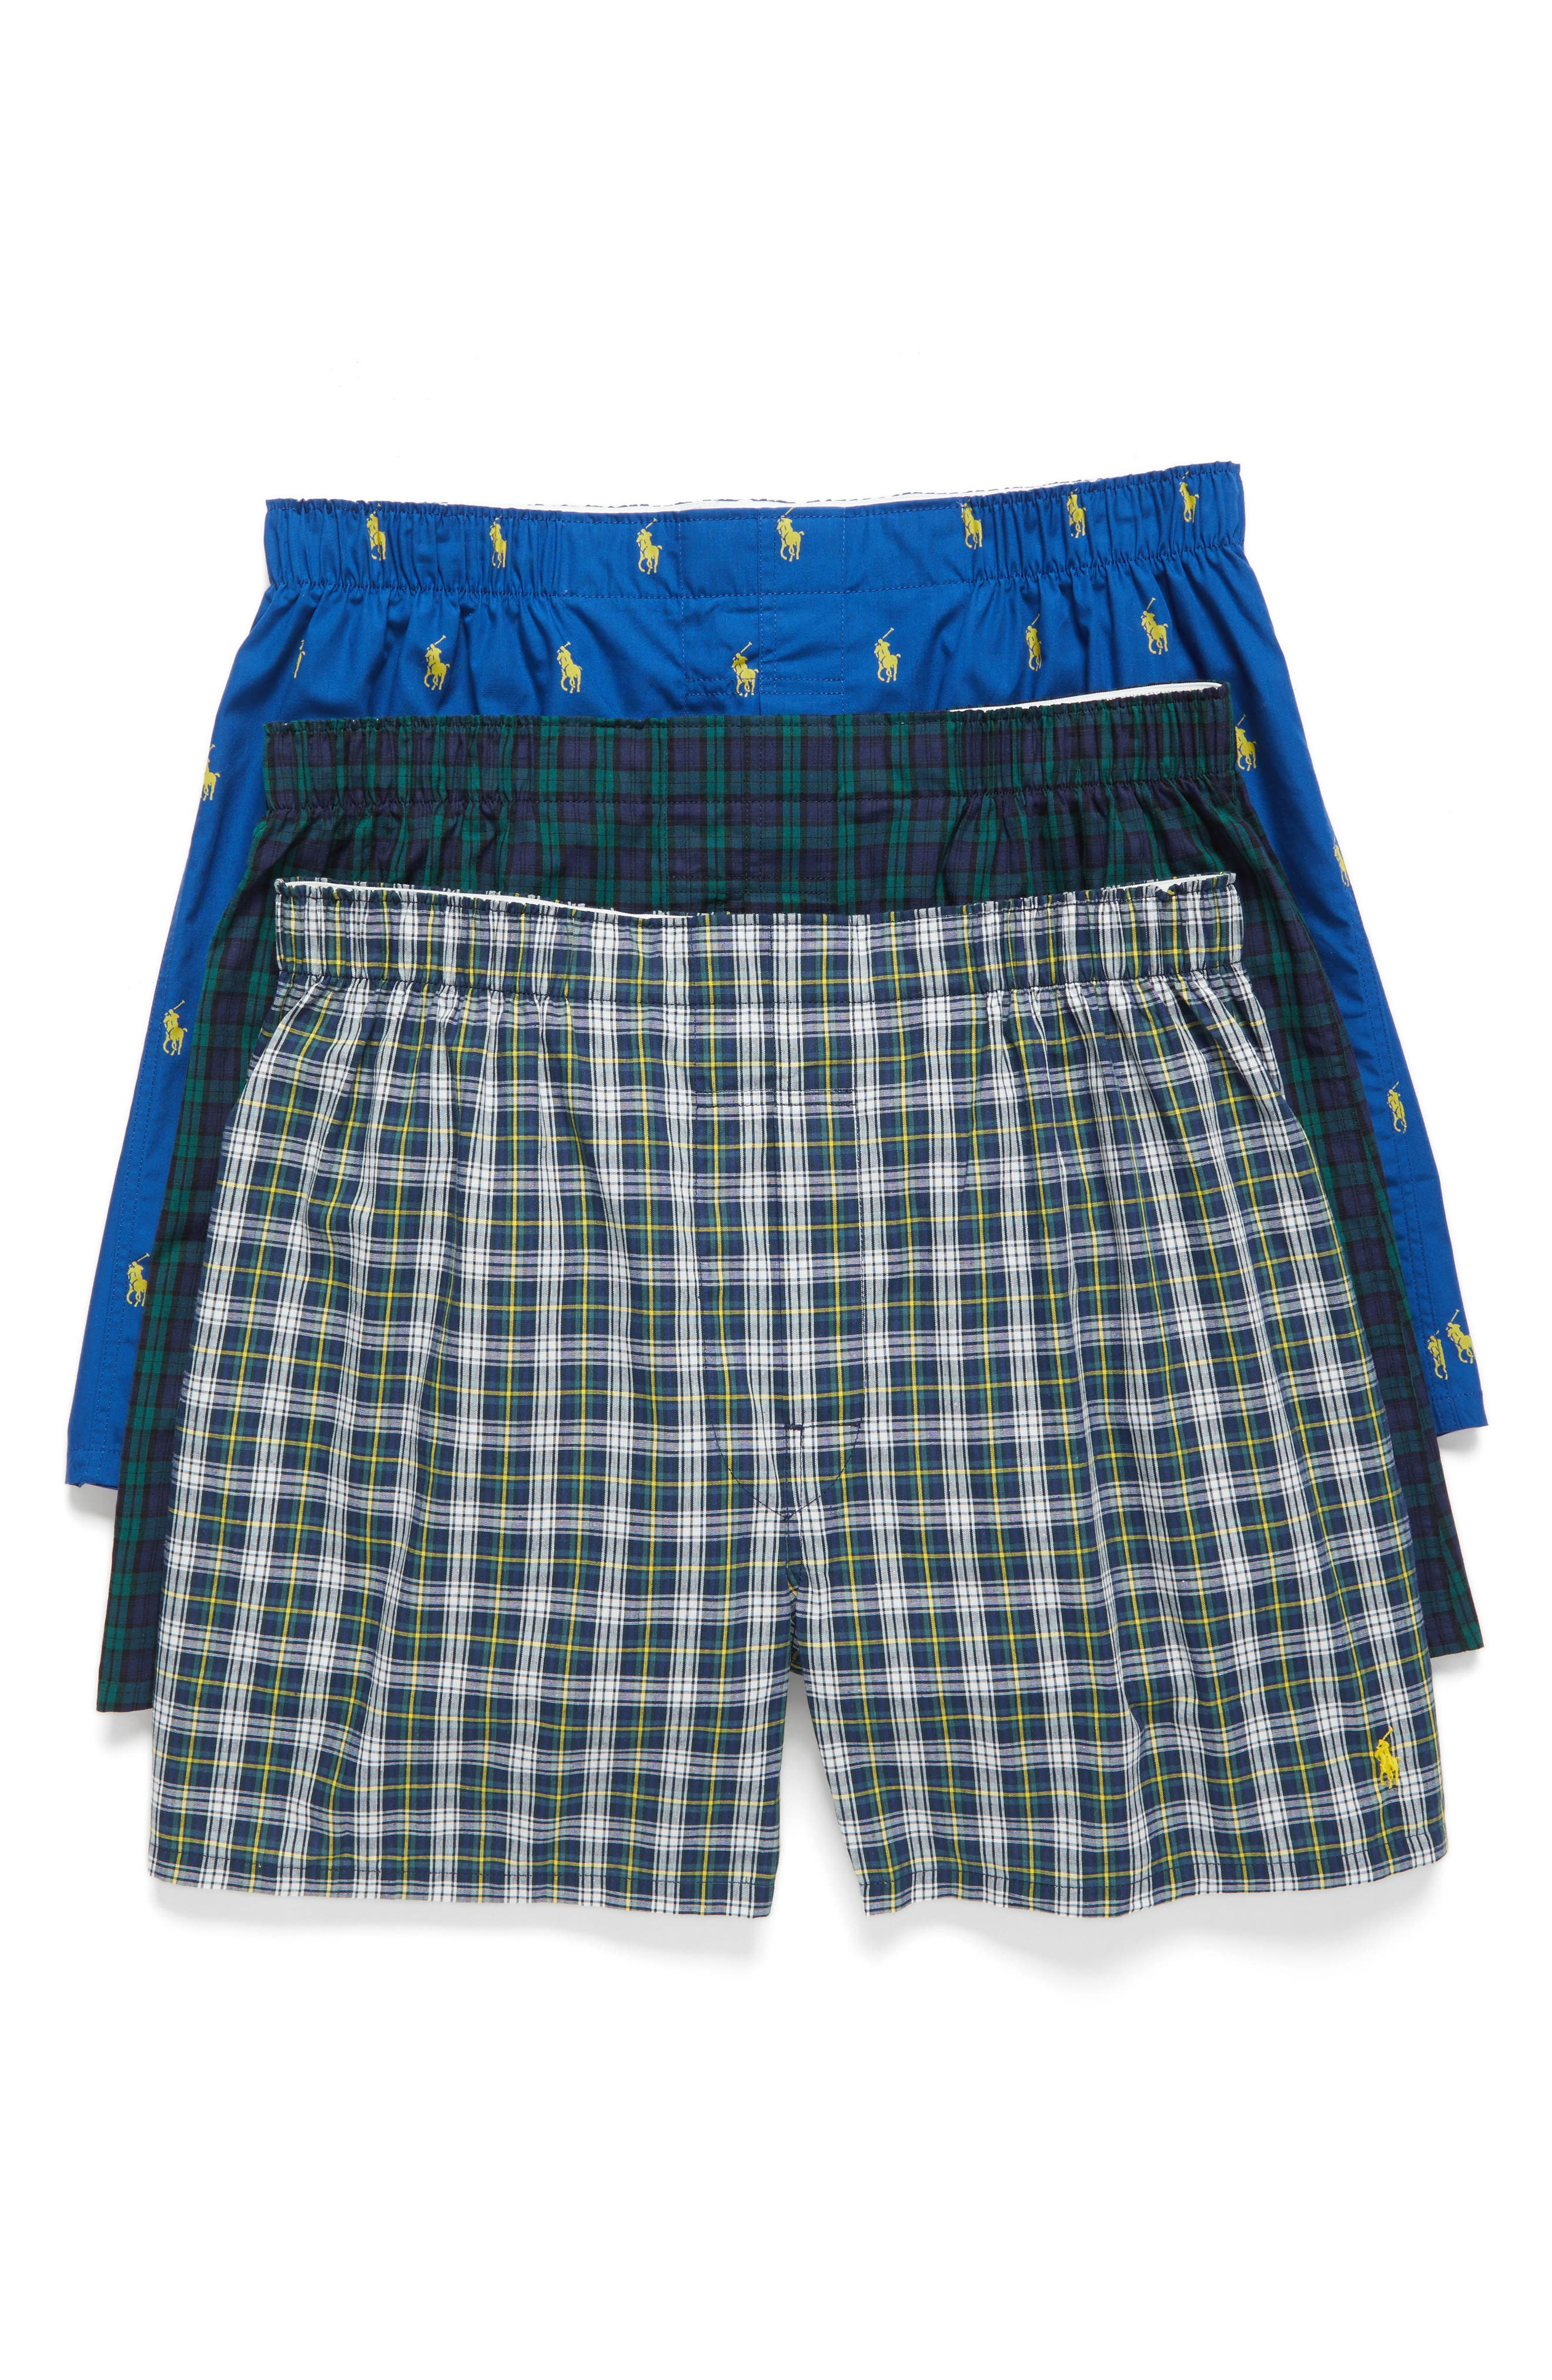 Assorted 3-Pack Woven Cotton Boxers,                             Main thumbnail 6, color,